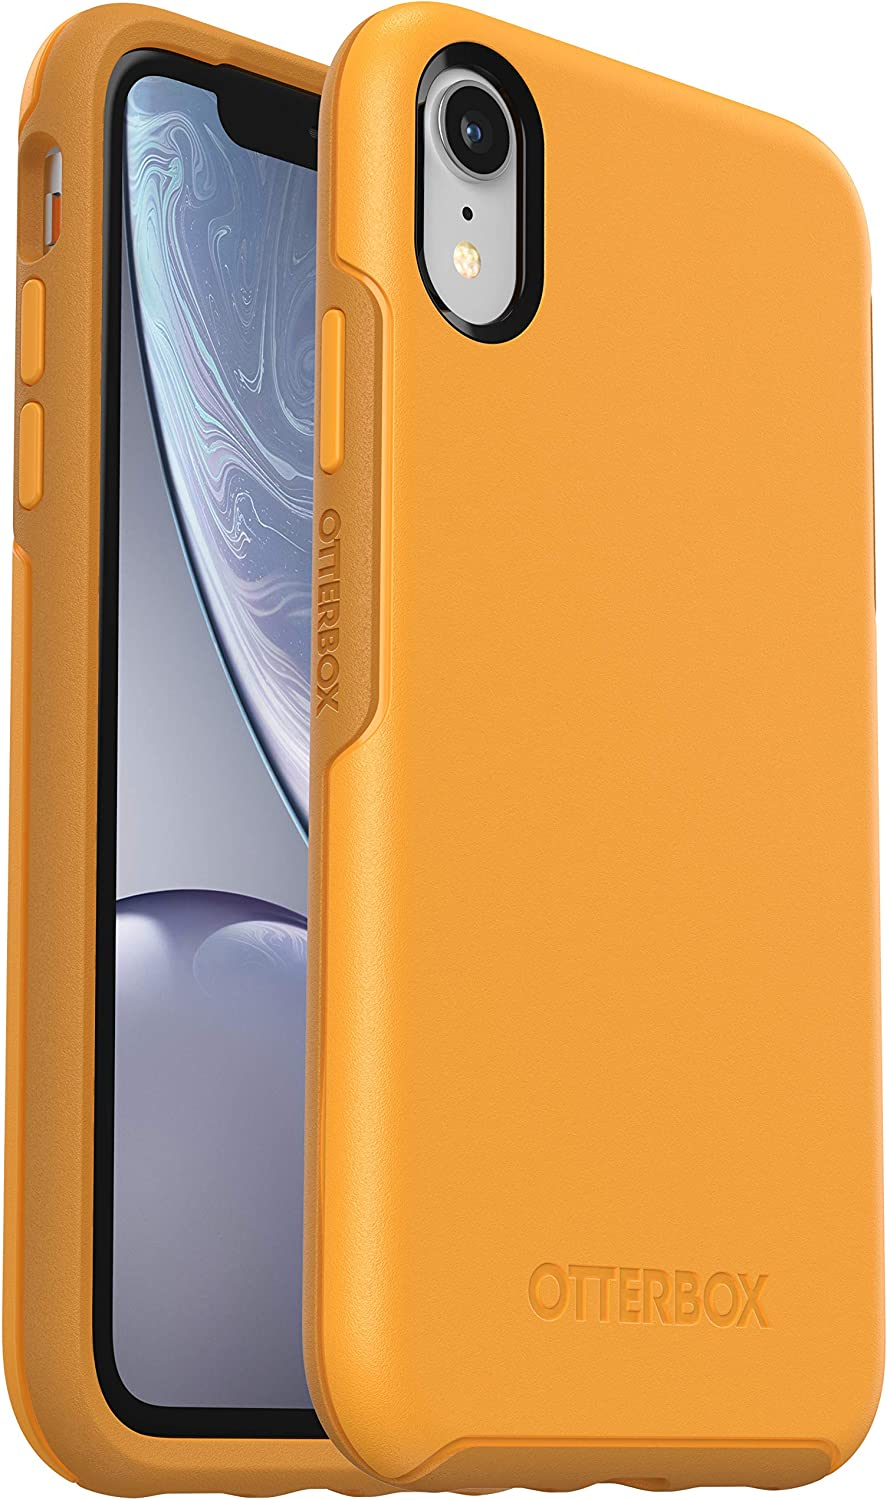 OtterBox Symmetry Series Case for iPhone XR - Non-Retail Packaging - Aspen Gleam